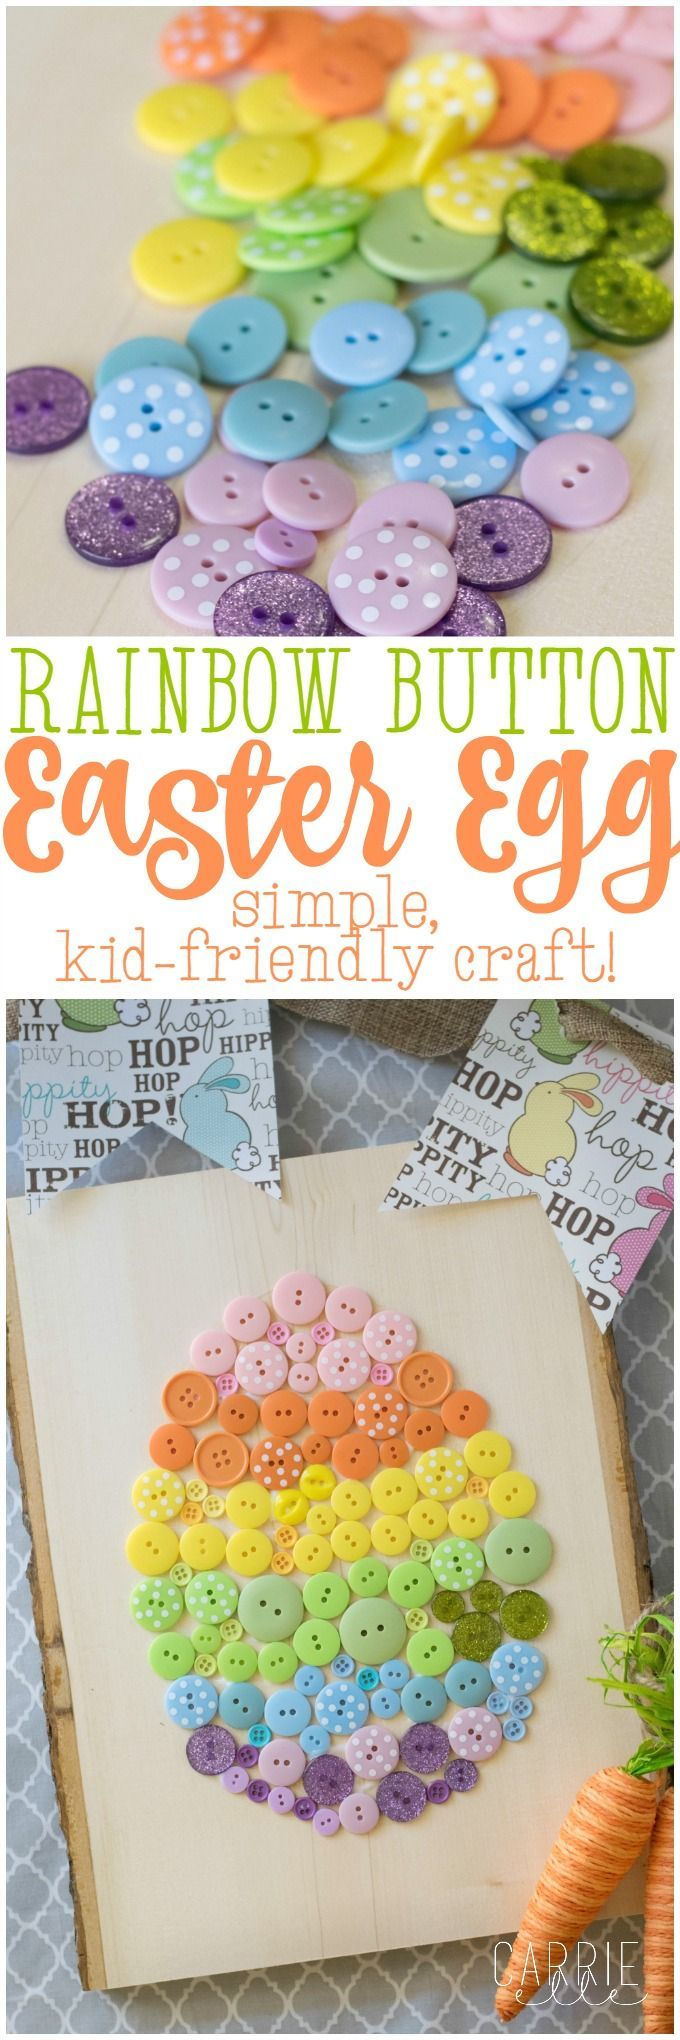 Easy Easter Craft: This Button Easter Egg is super simple to make and looks ADORABLE...perfect for Easter and spring decorating!